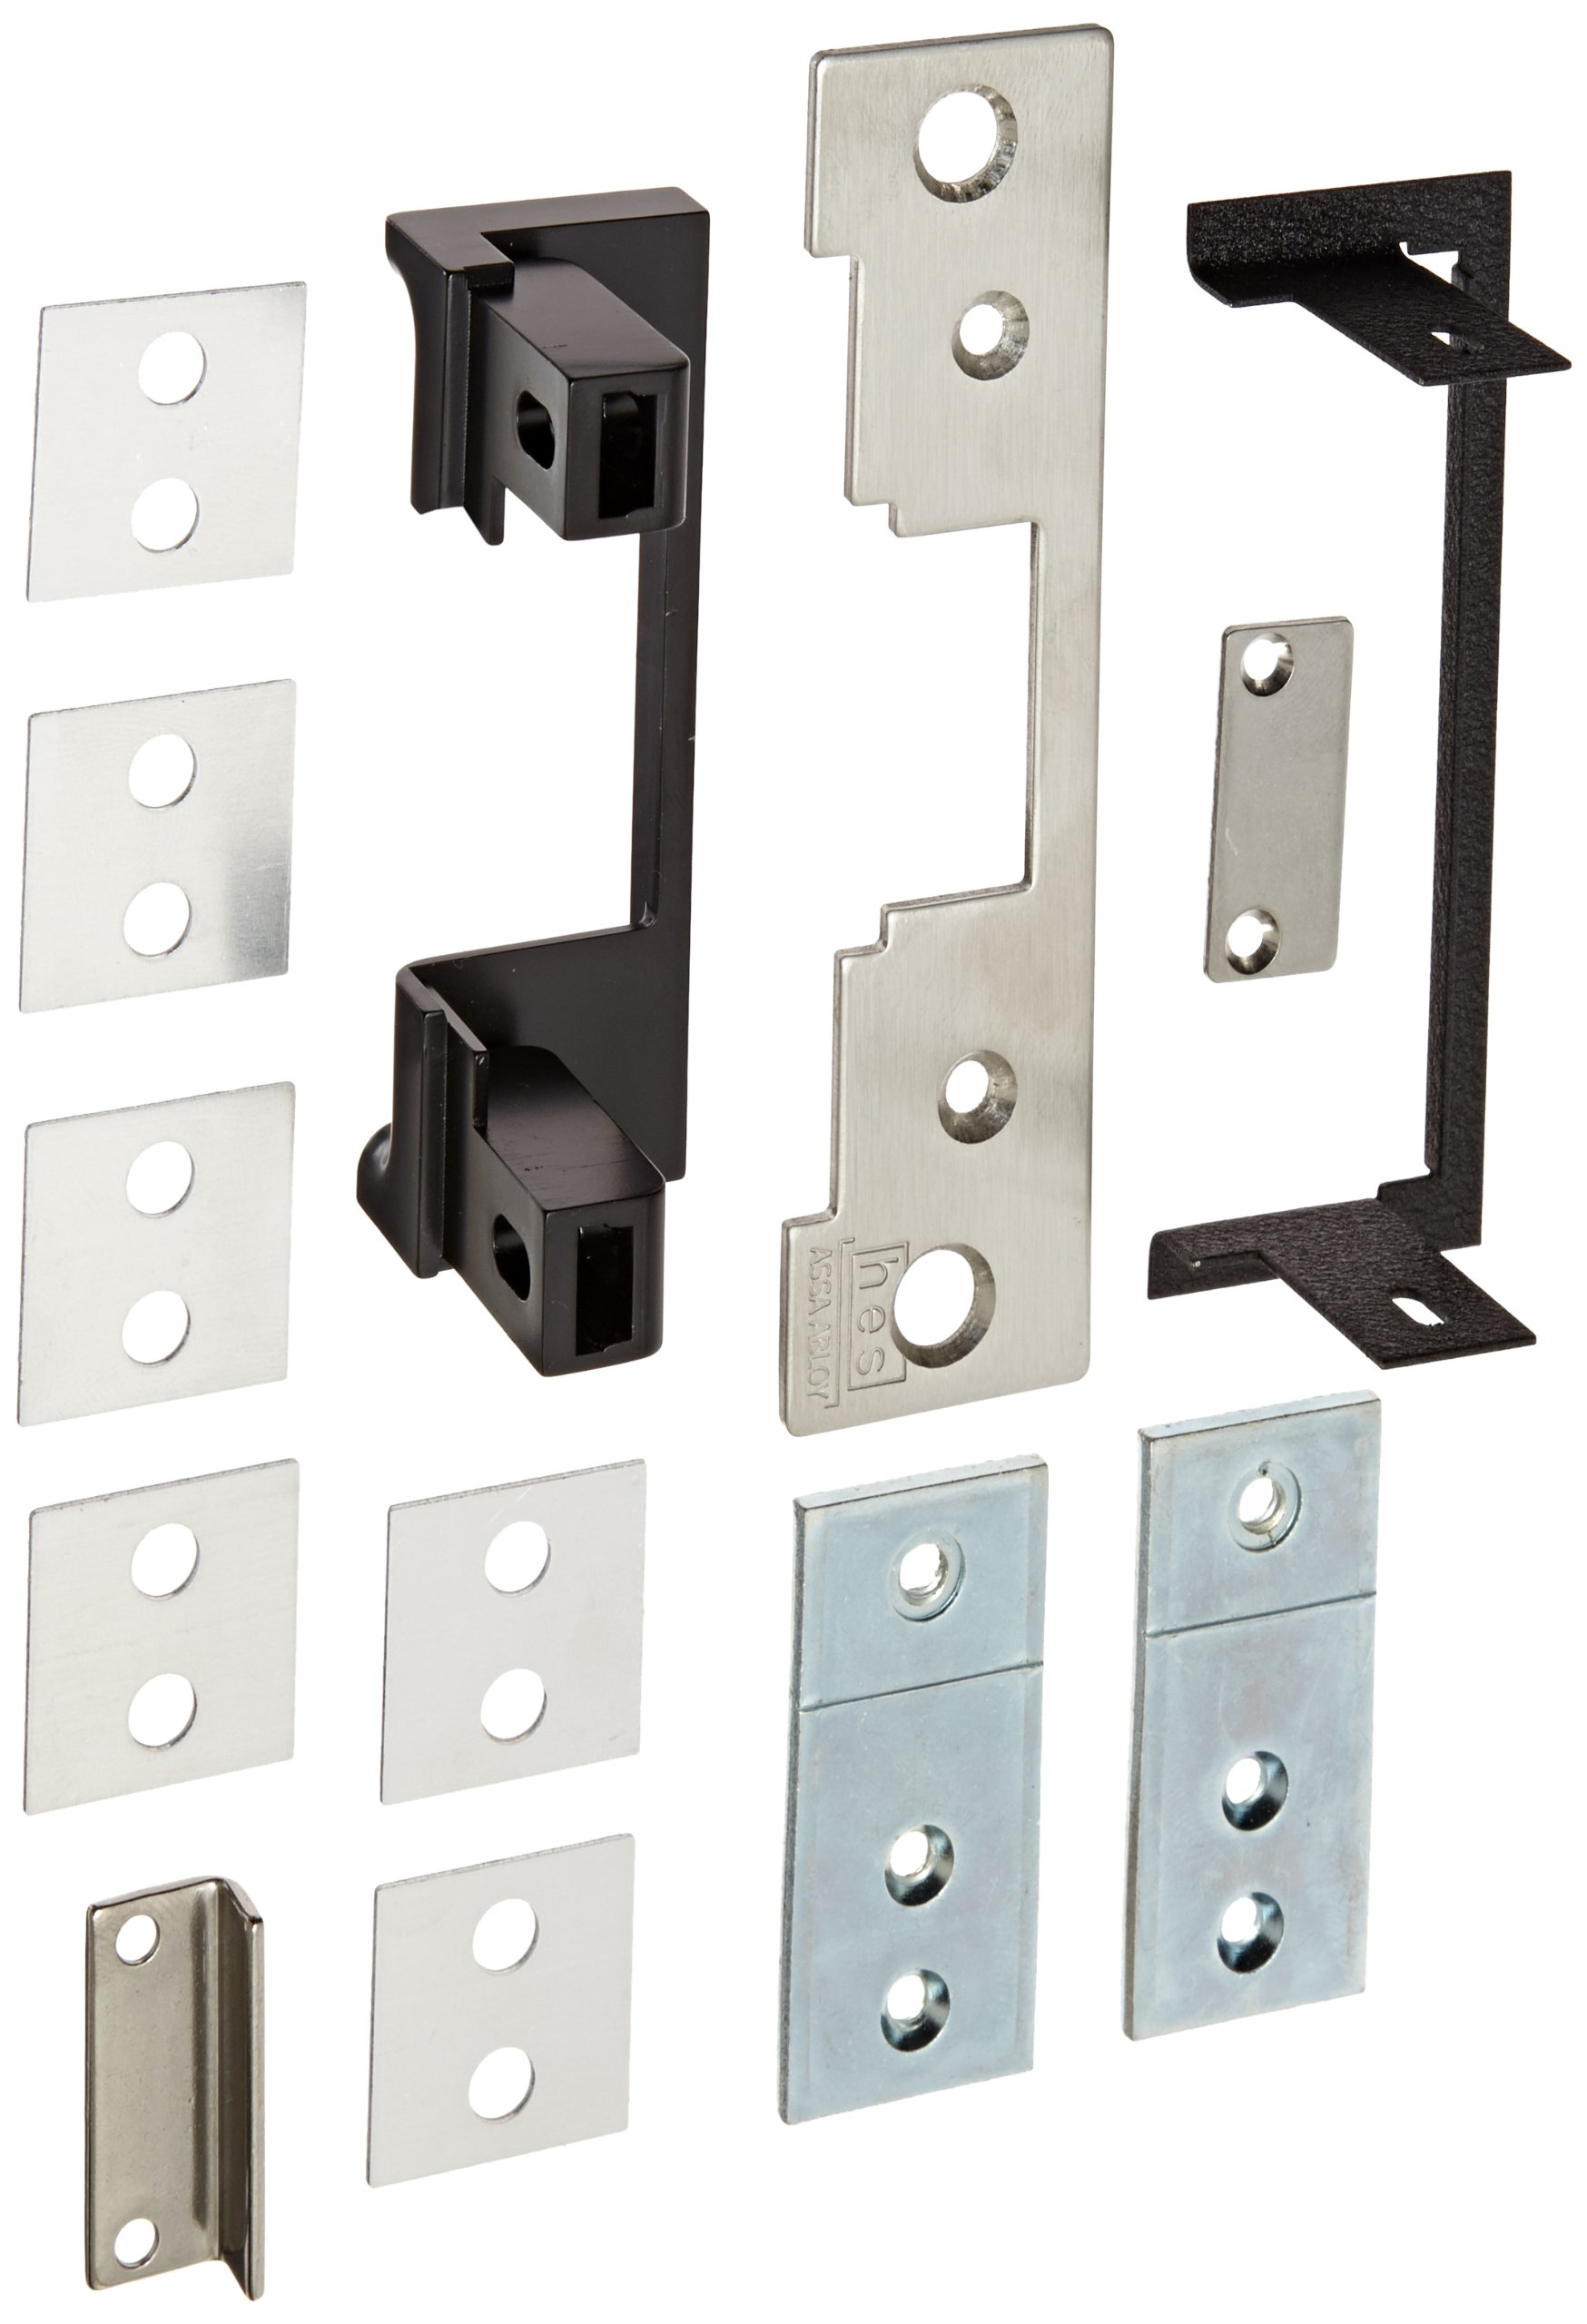 HES Stainless Steel 791 Faceplate for 7000 Series Electric Strikes for Cylindrical Locksets Up To 5/8'' Throw, Satin Stainless Steel Finish by HES (Image #1)